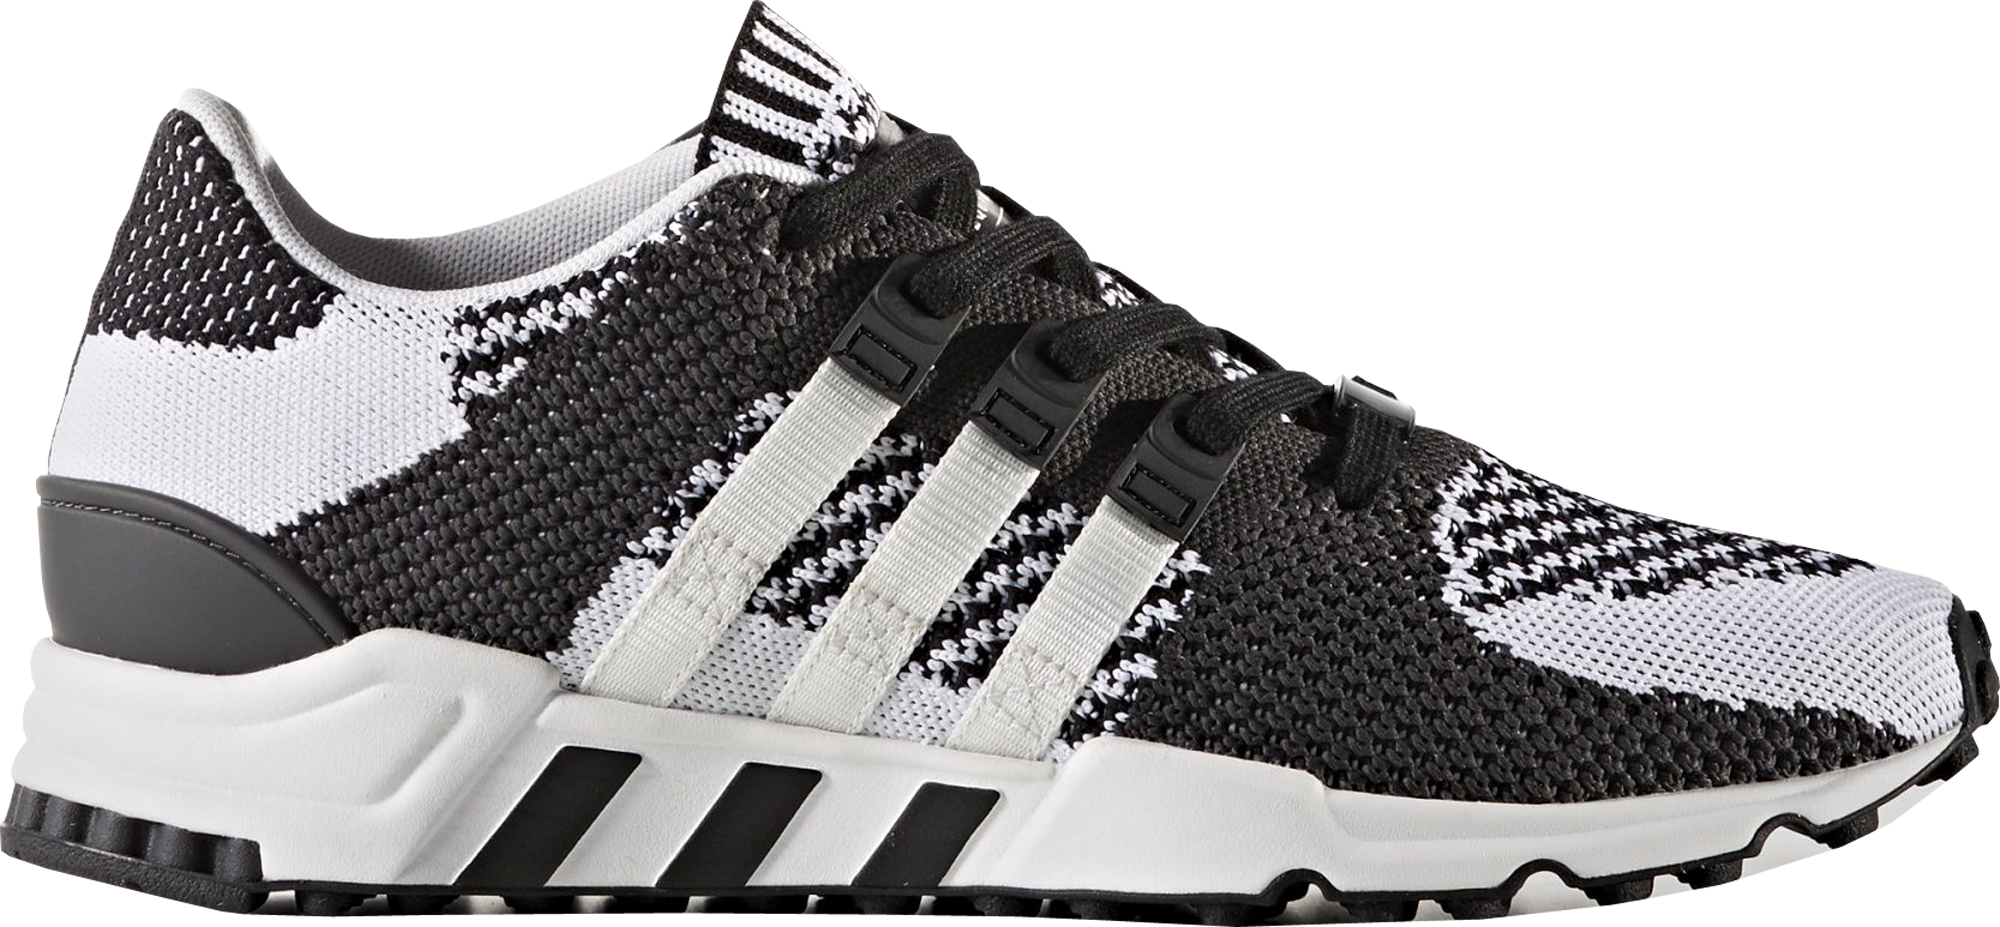 Rf Primeknit Black News Stockx White Eqt Support Adidas vmwNn08